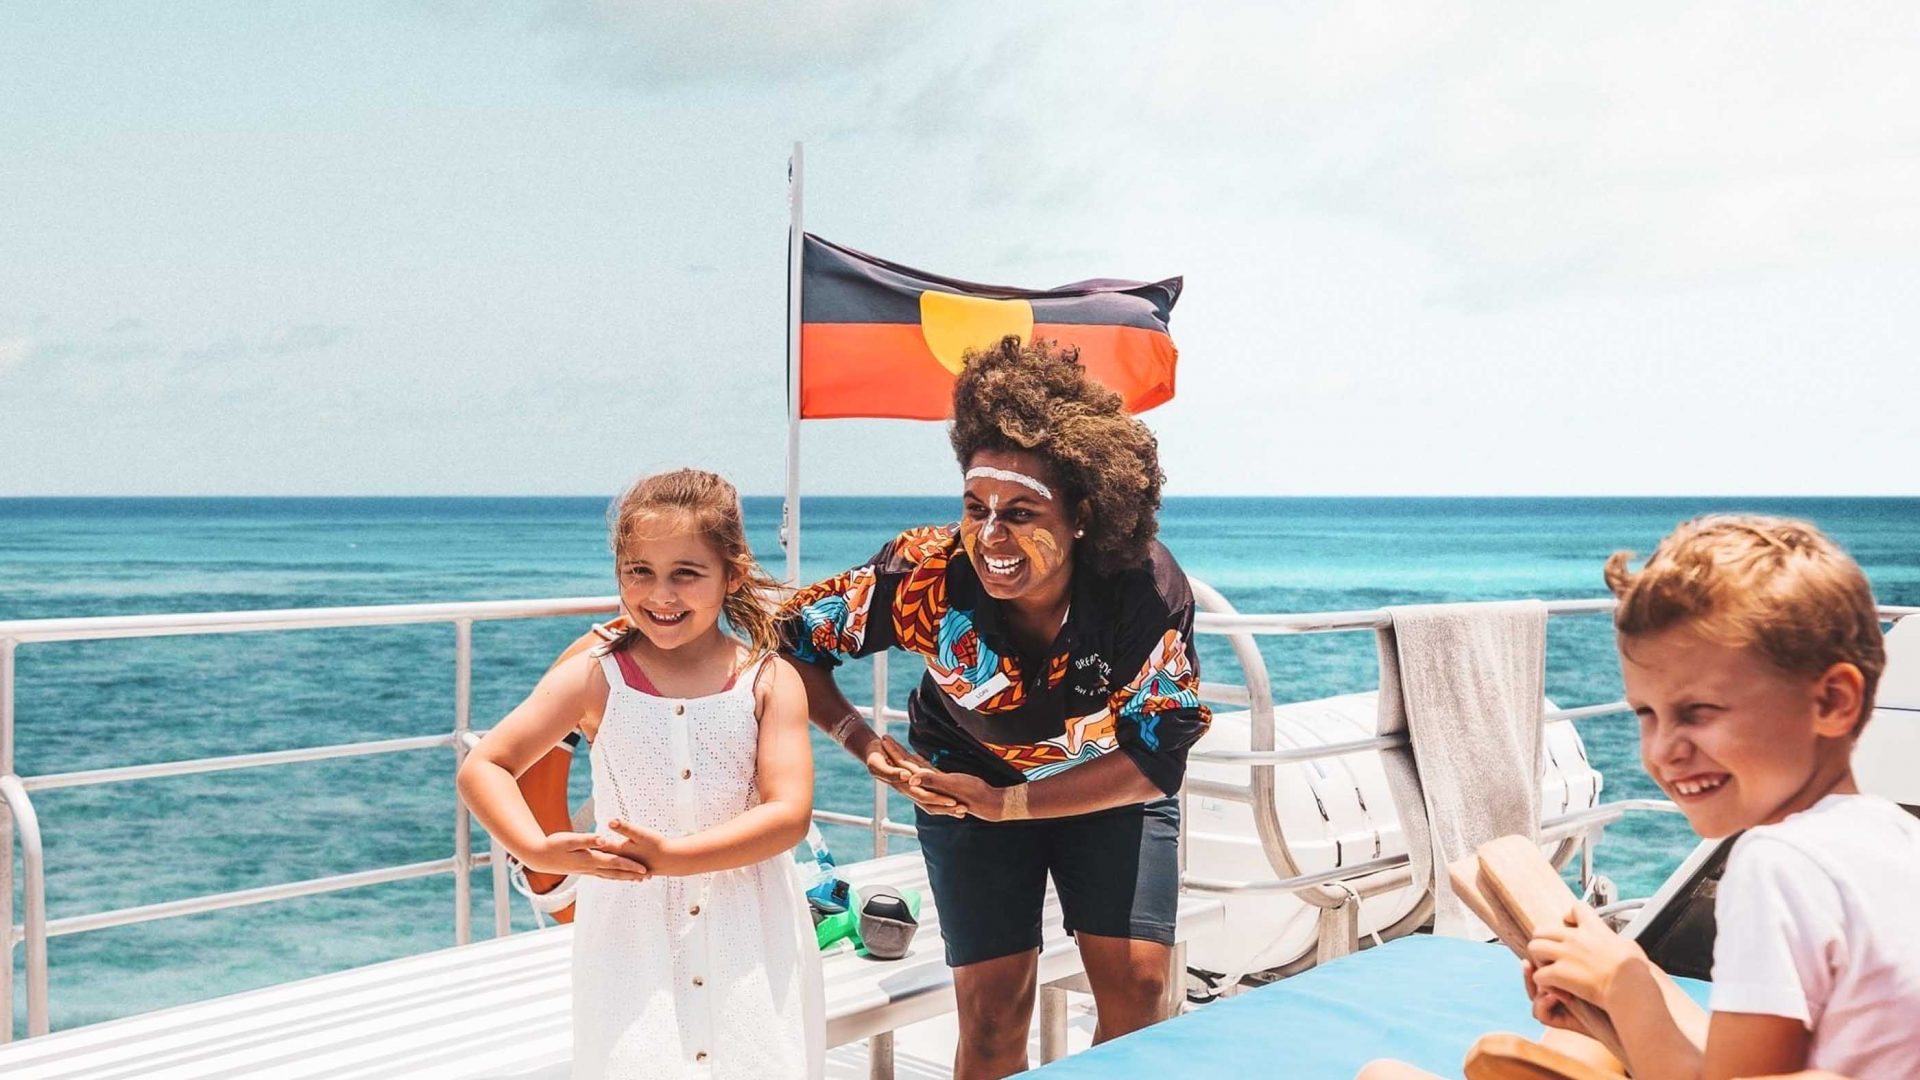 A woman and child on a boat with an Aboriginal flag.